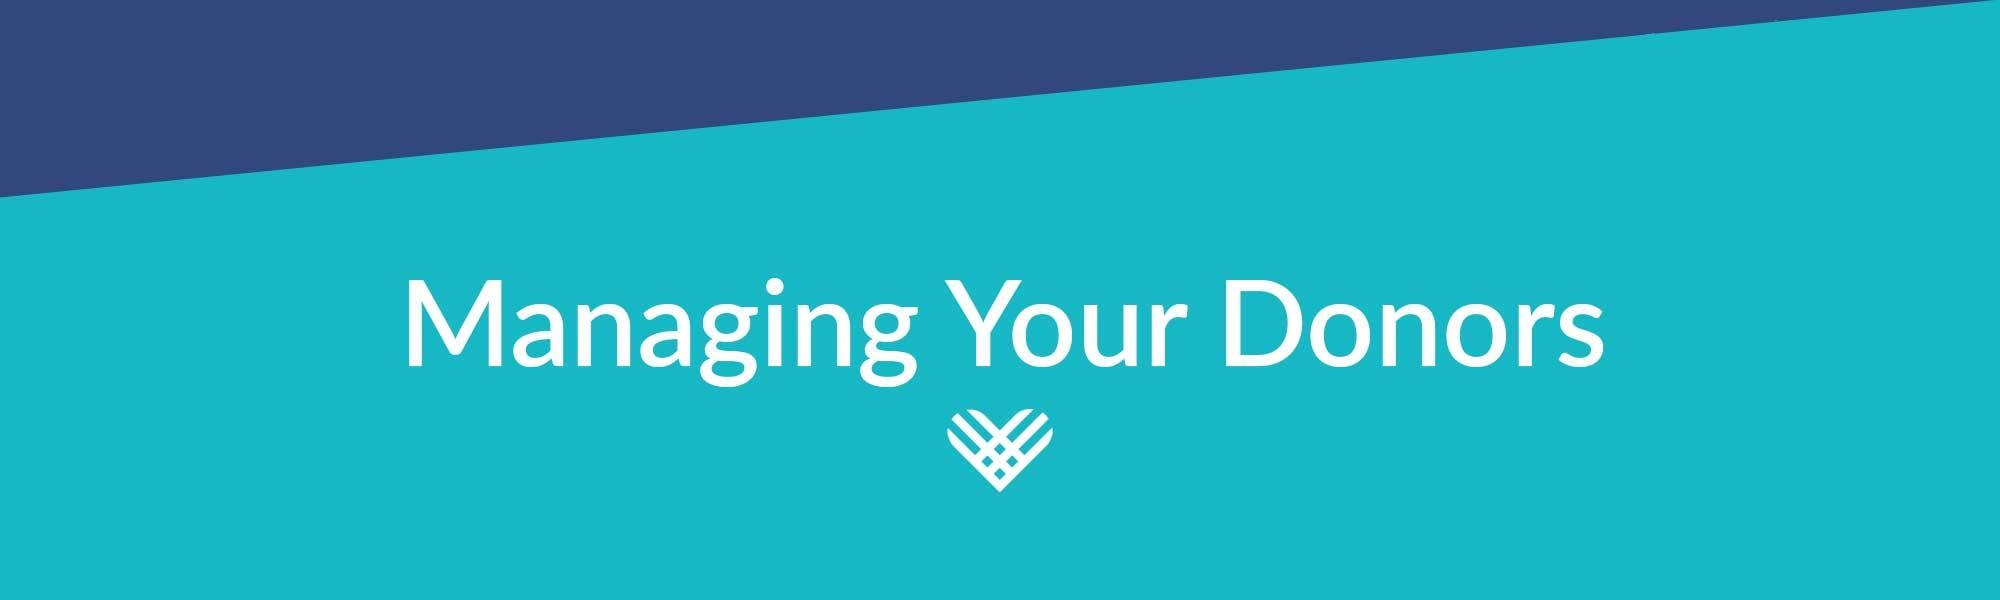 header image for managing your donors on giving tuesday